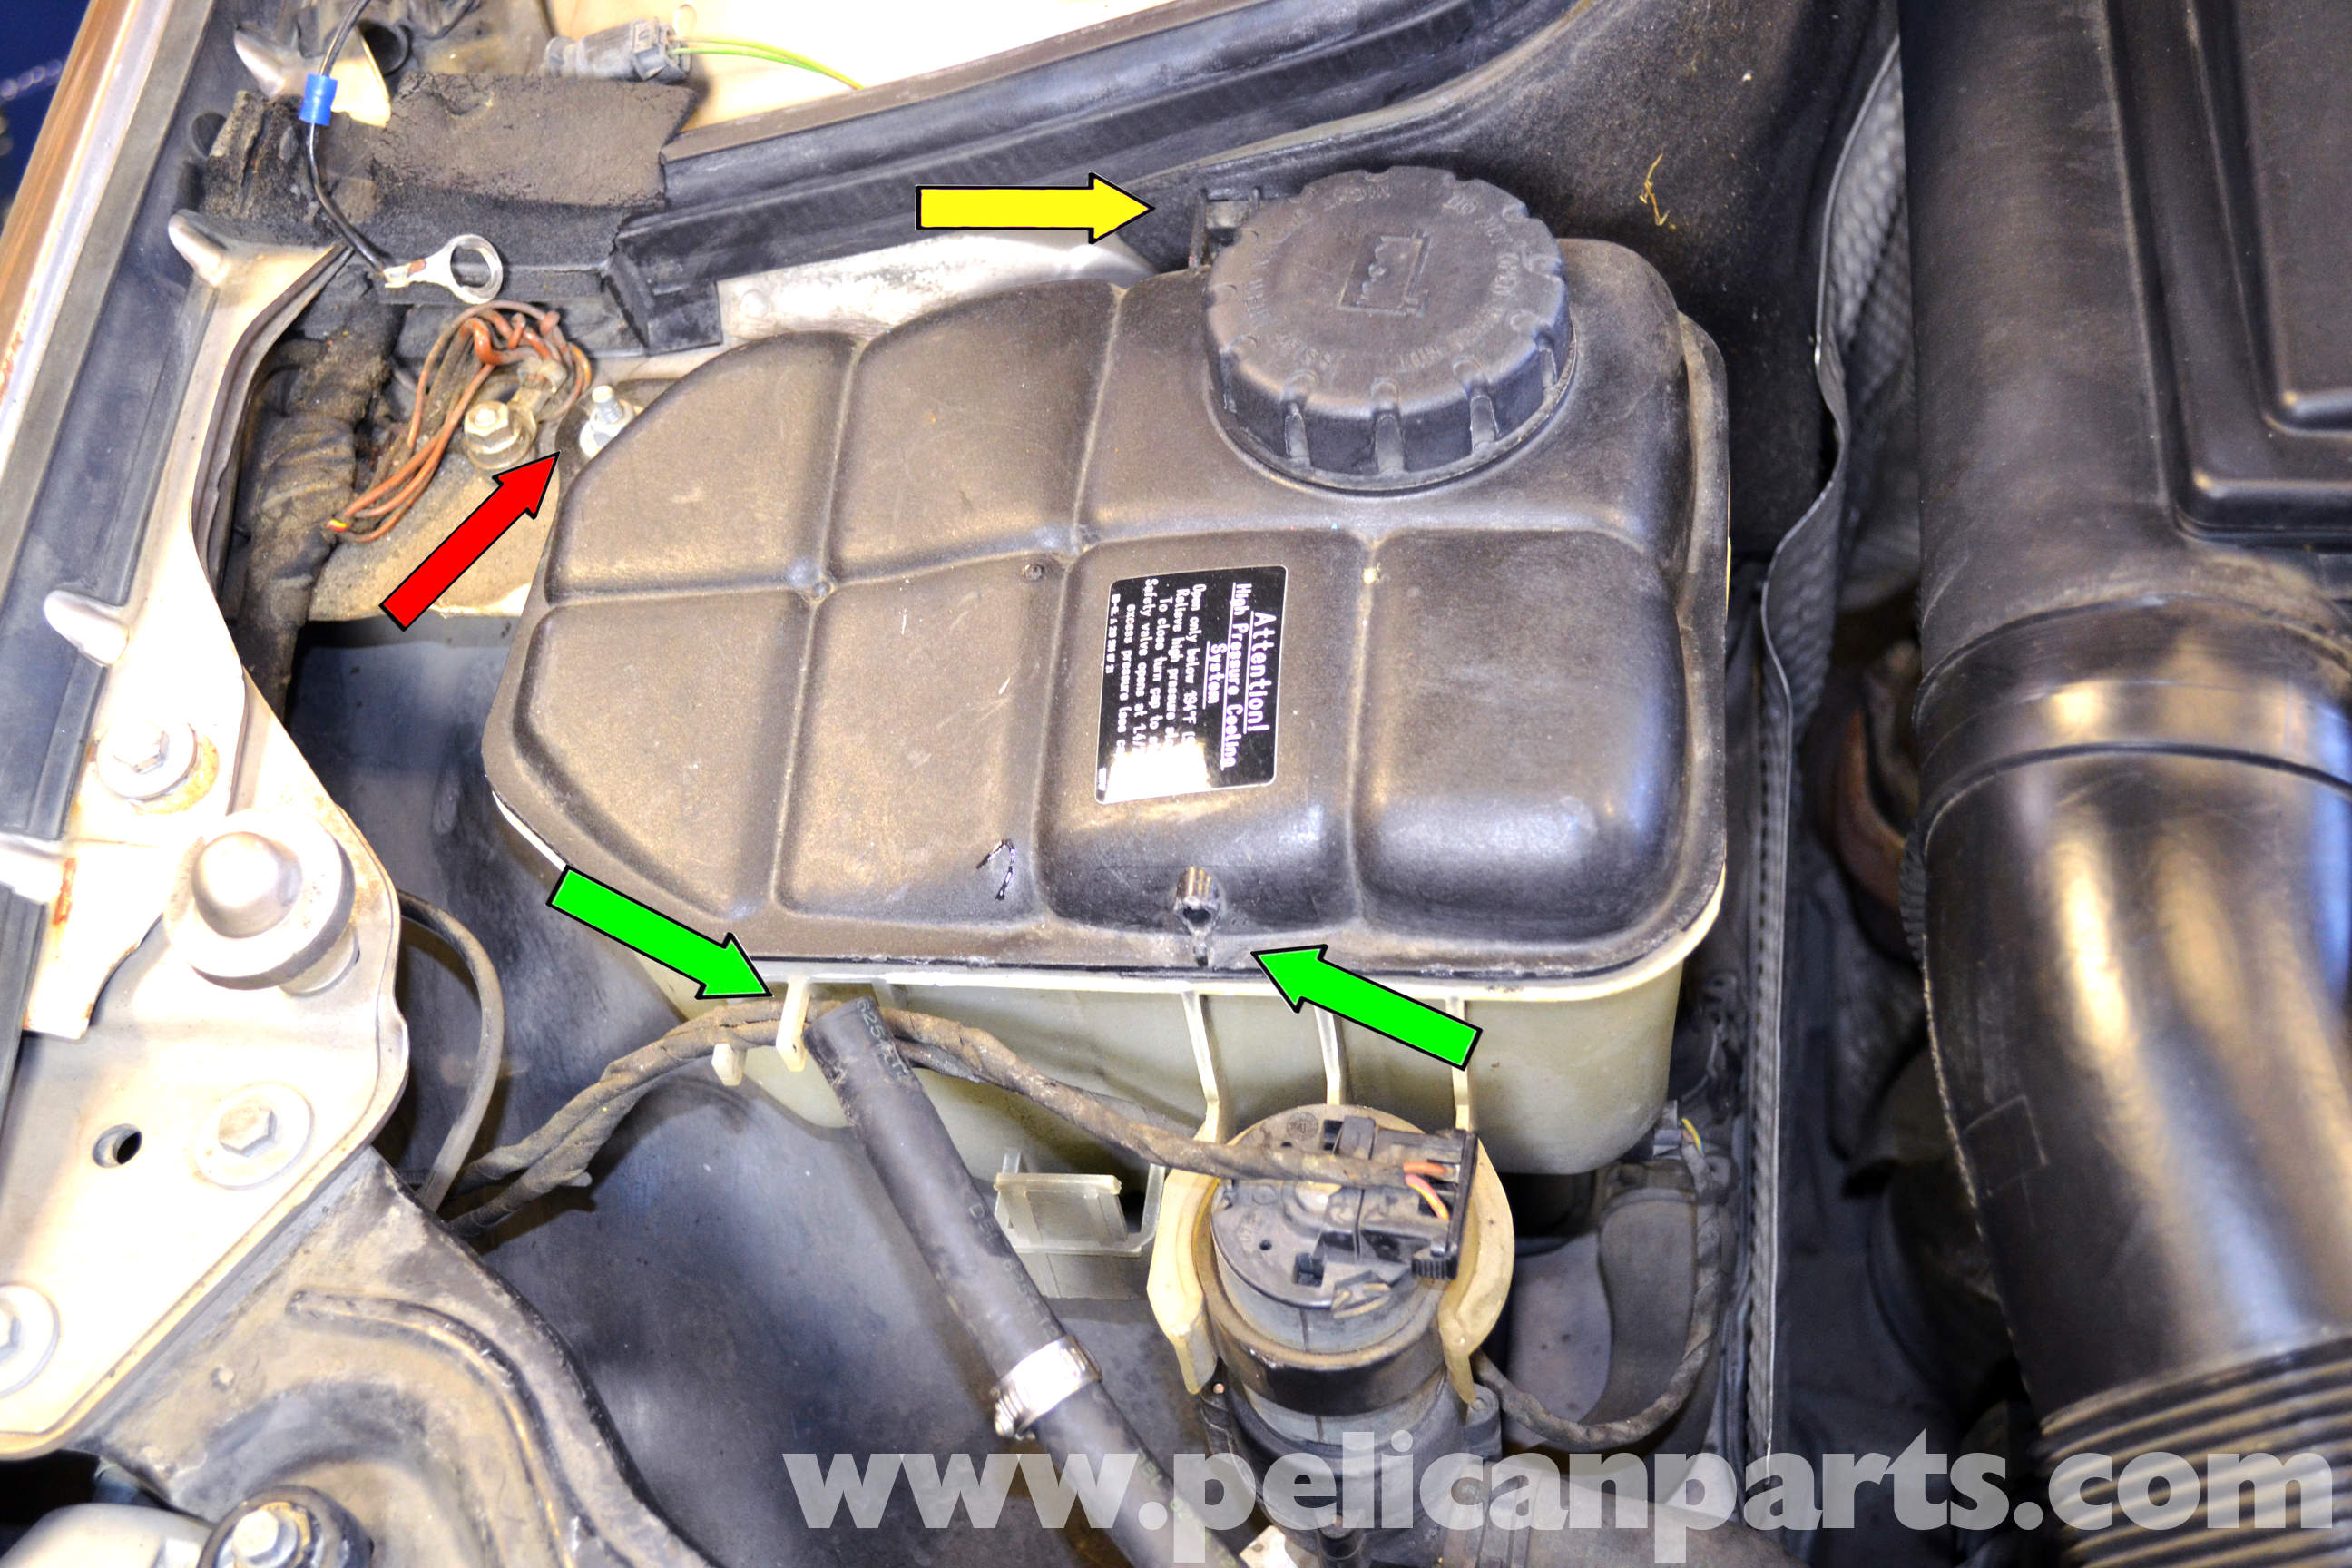 Mercedes C Class Fuse Box Wiring Diagrams For Dummies Windshield Wiper 2000 C230 Kompressor 2007 Engine Diagram Get Free Image About